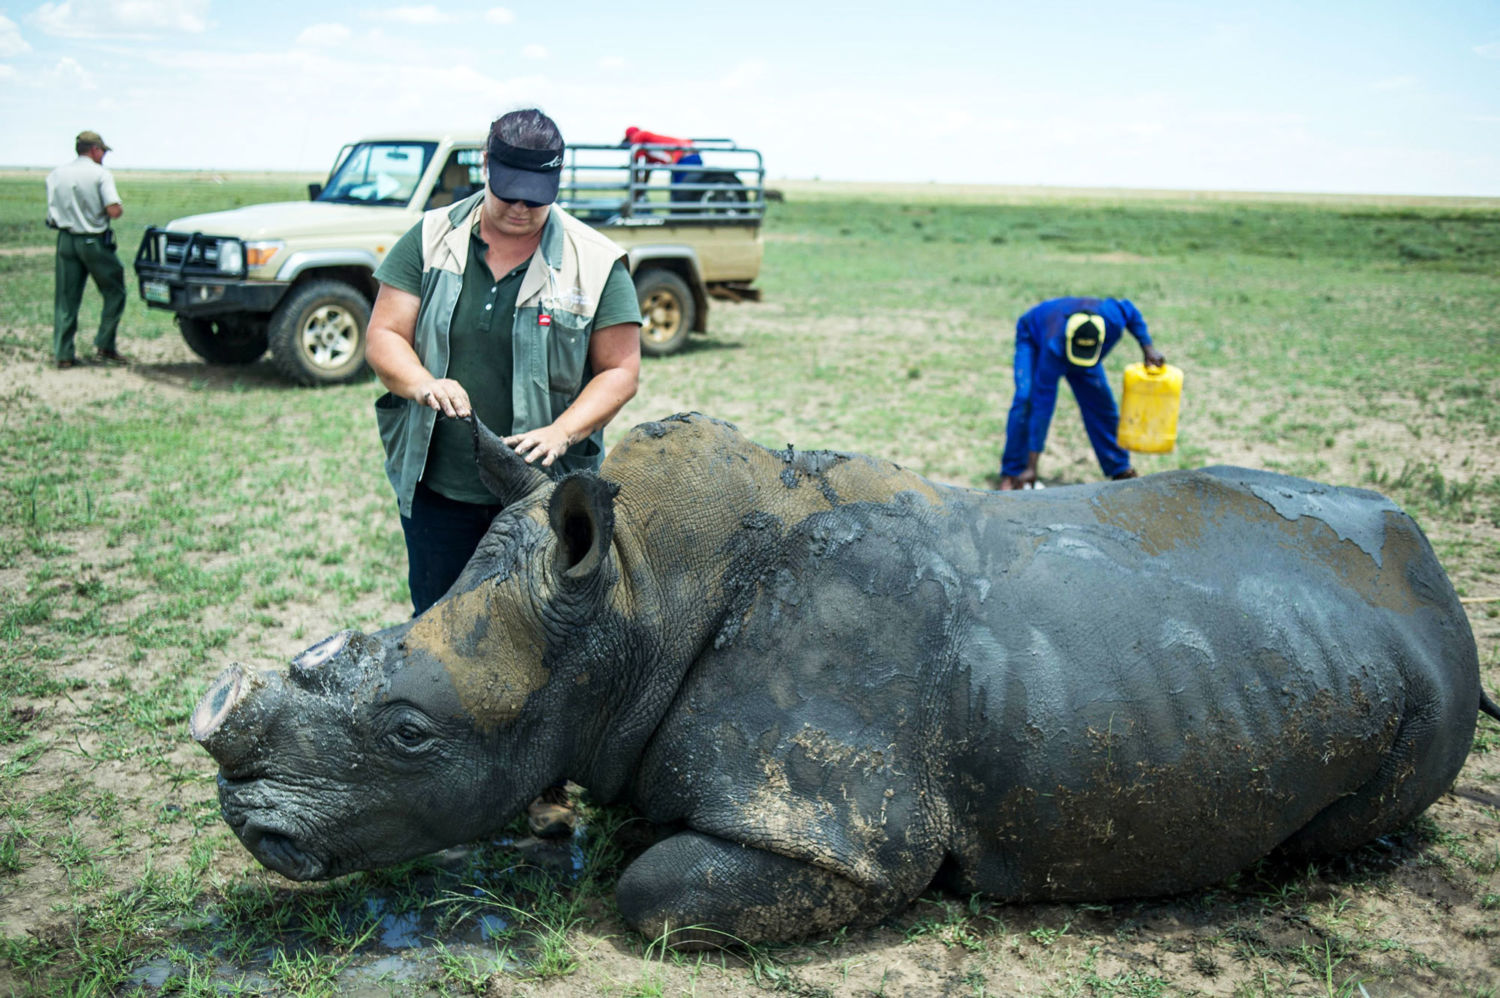 Rhino Coin Can A Cryptocurrency Help Save Africa S Rhinoceroses Yale E360